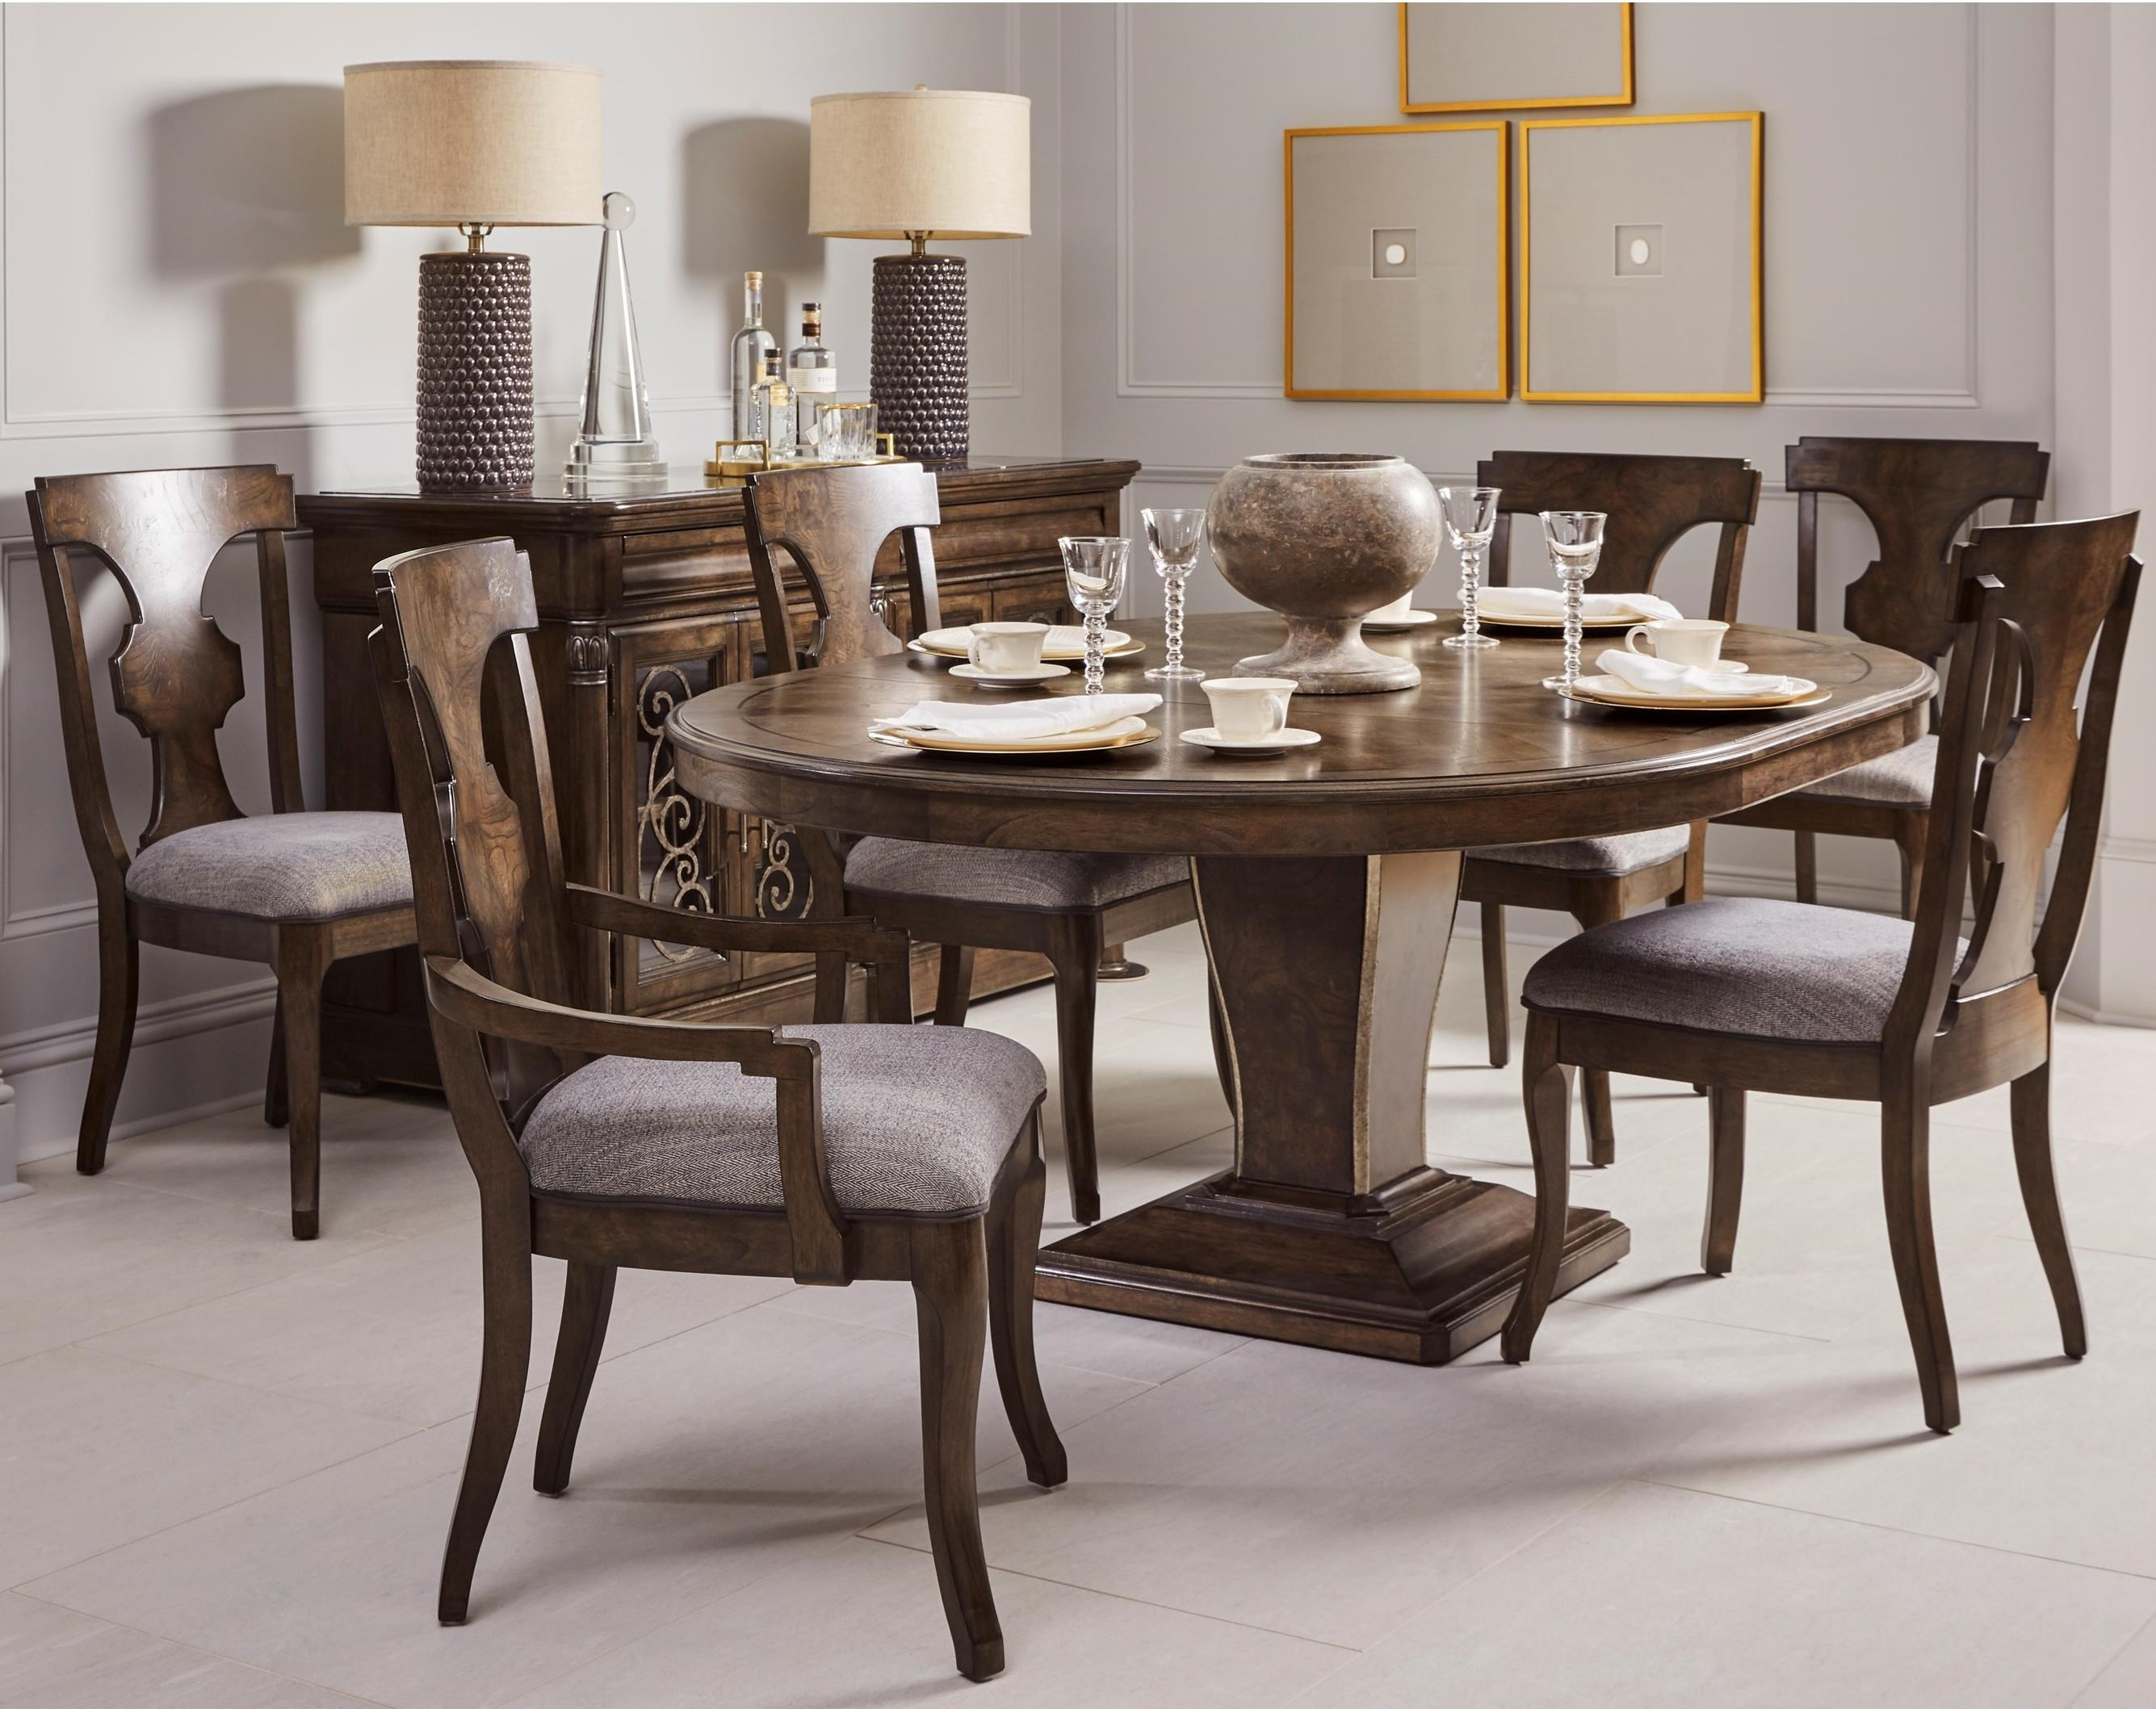 Landmark 7-Piece Oval Table and Chair Set by A.R.T. Furniture Inc at Dream Home Interiors